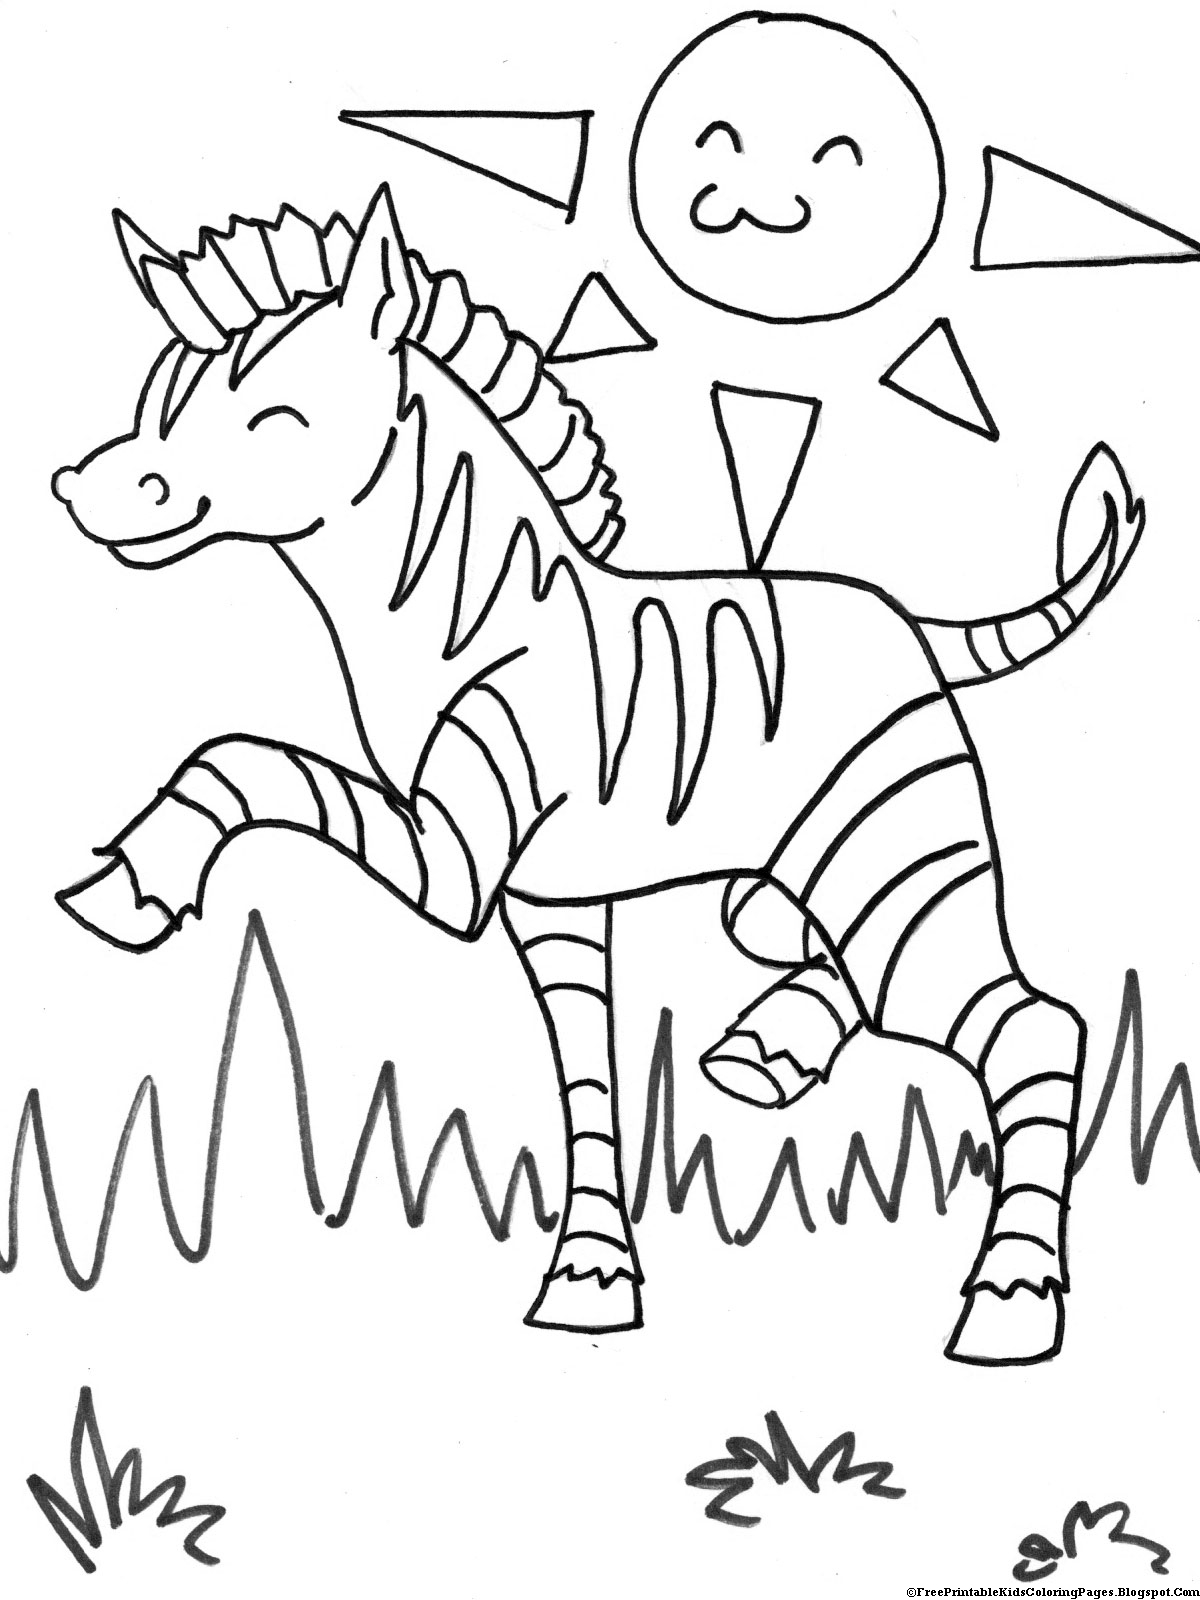 coloring pages for kids zoo free printable zoo coloring pages for kids for kids zoo pages coloring